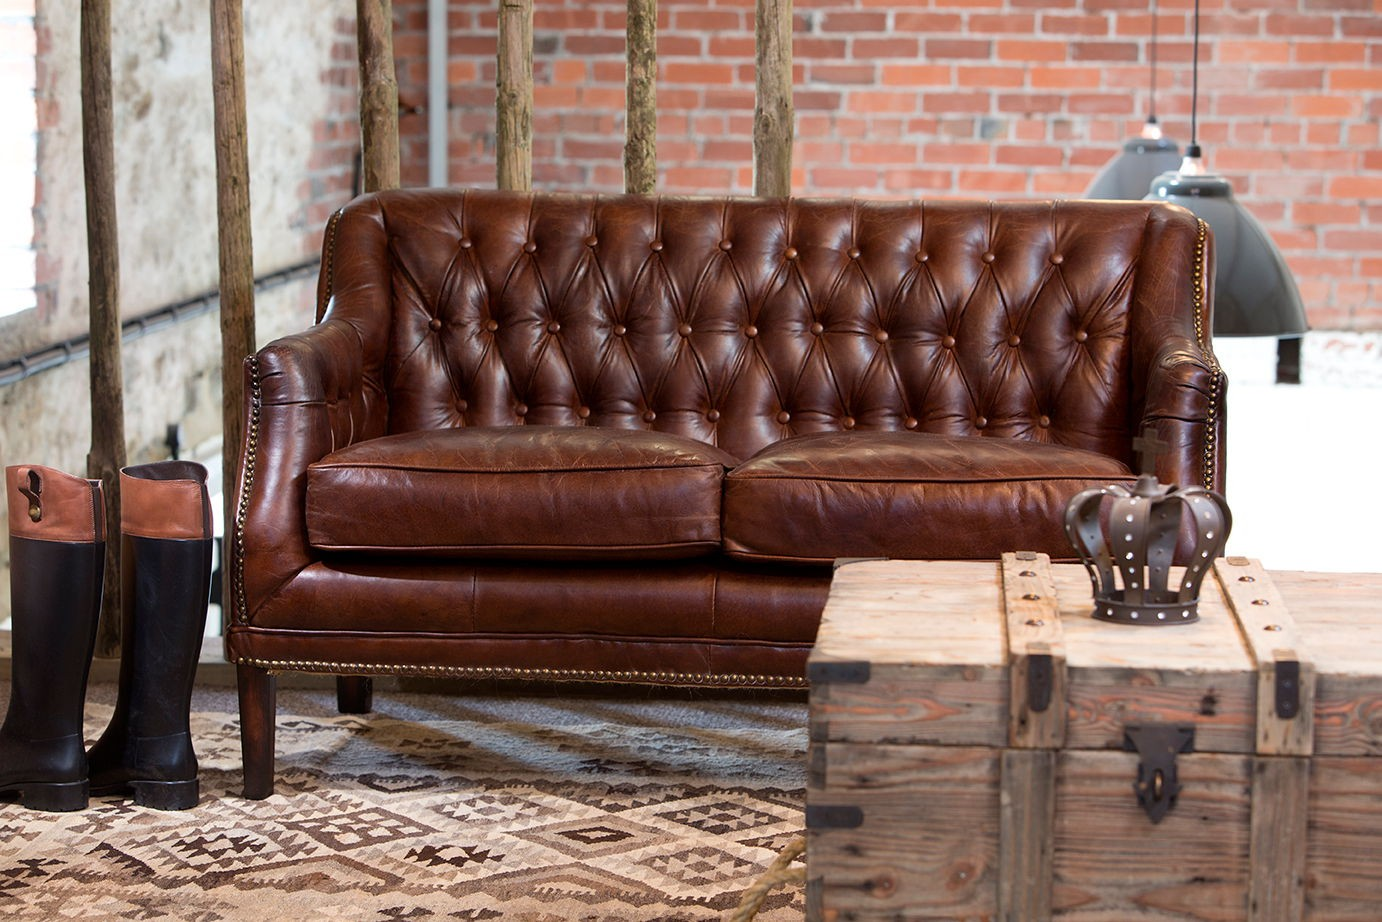 vintage brown leather sofa images galleries with a bite. Black Bedroom Furniture Sets. Home Design Ideas